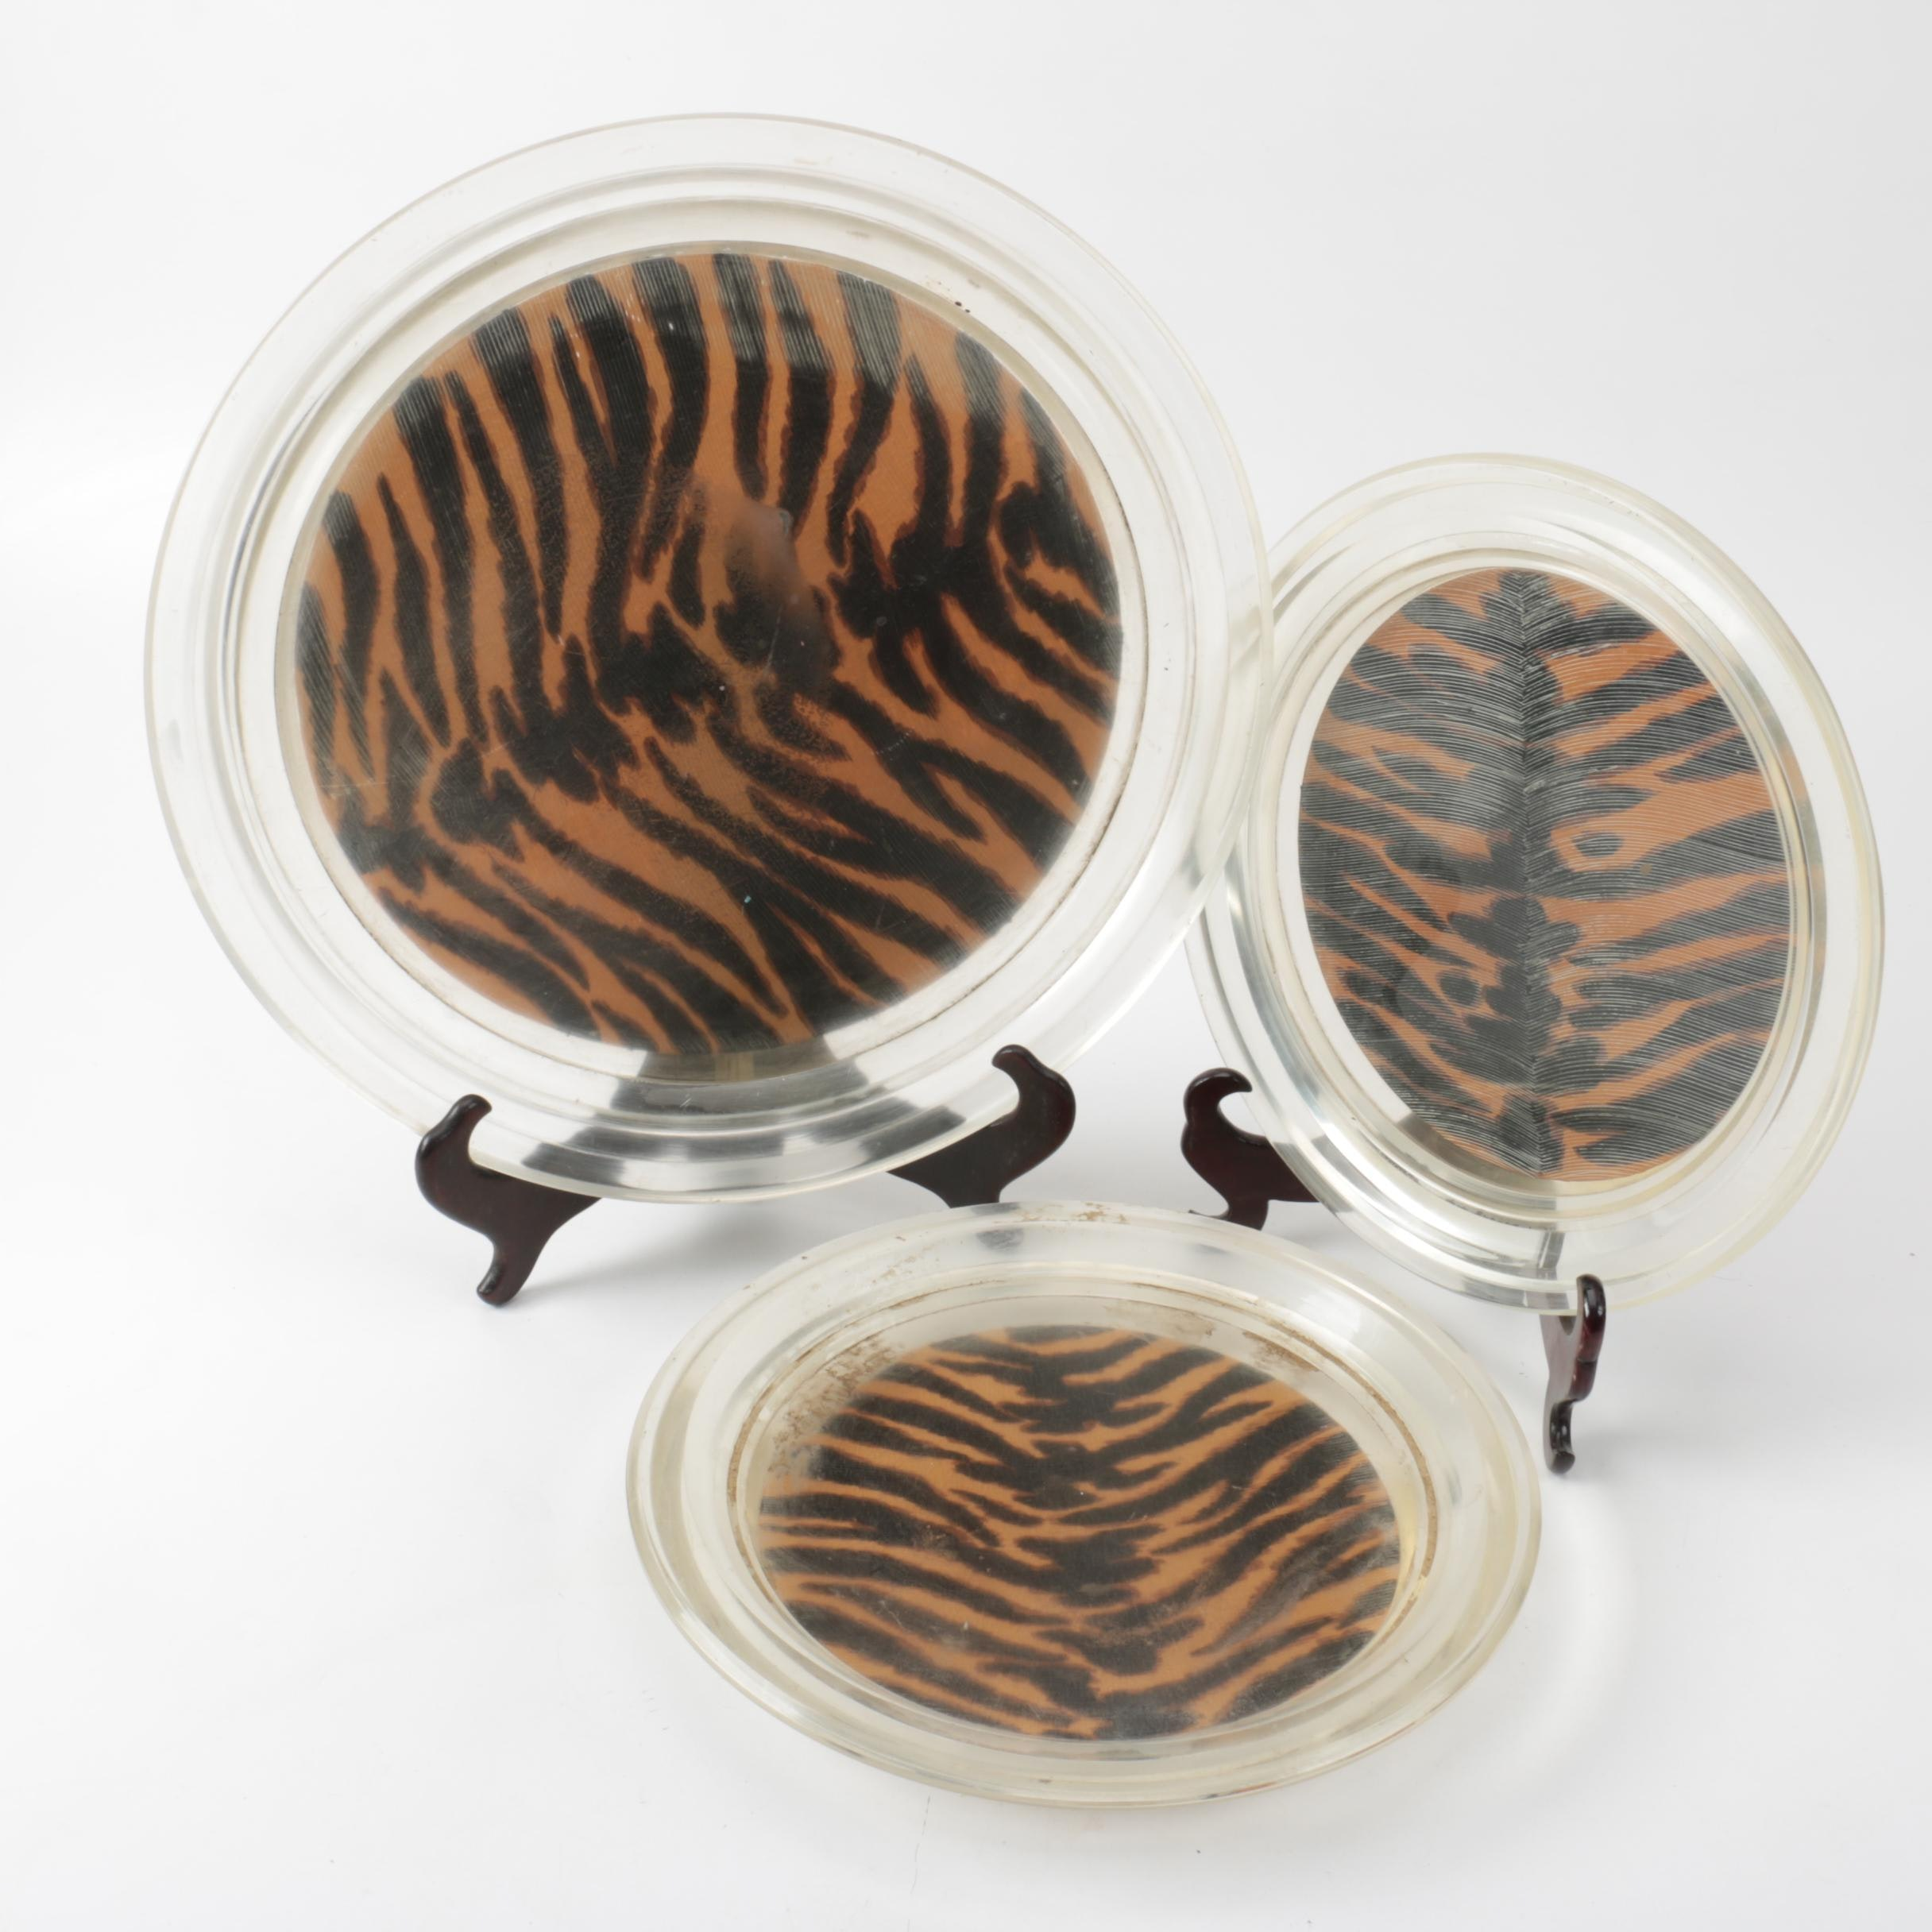 Decorative Tiger Patterned Plates With Stands